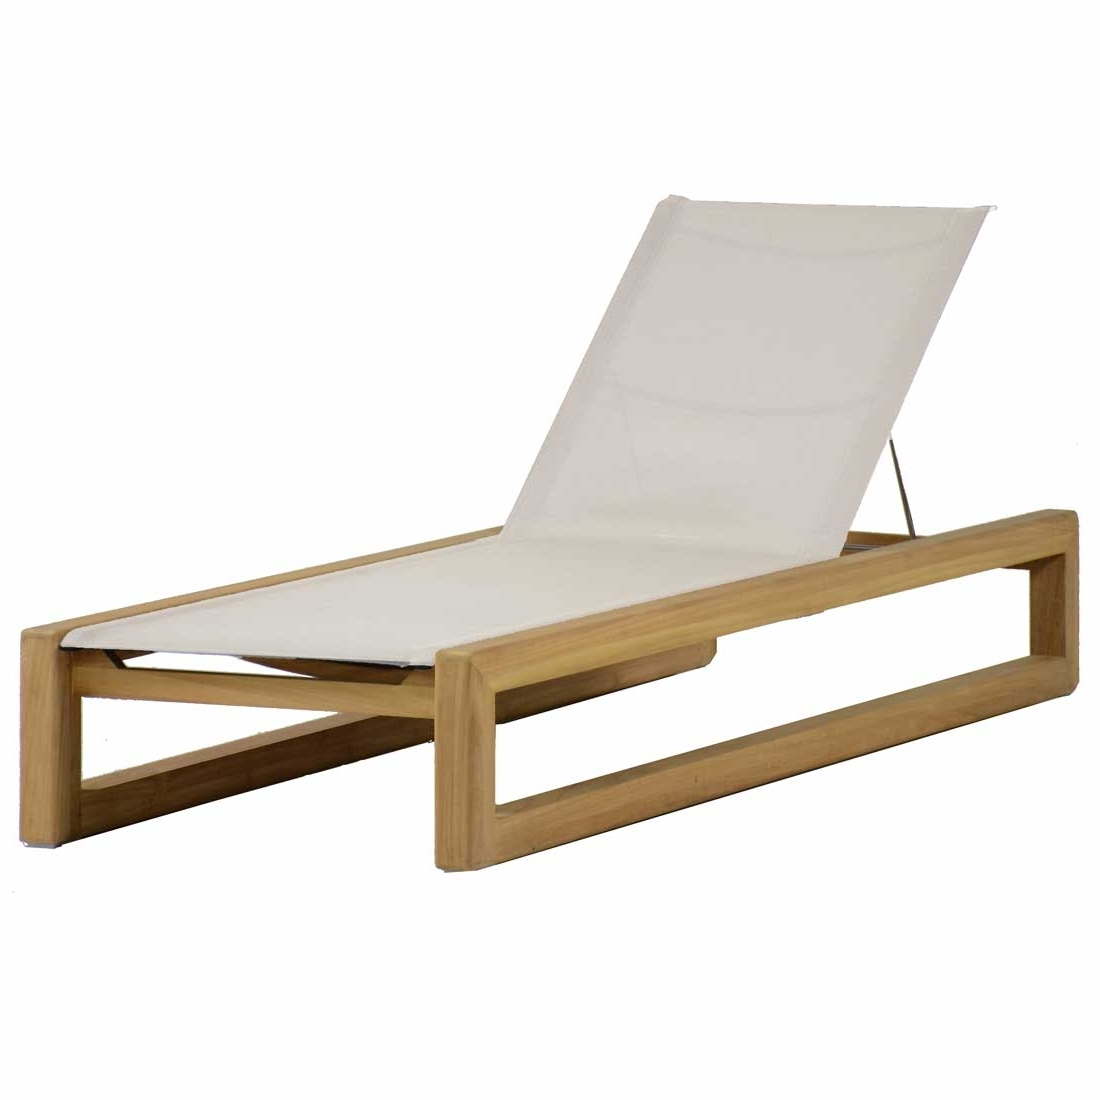 Current Teak Chaise Lounges Throughout Bali Teak Chaise Lounge – Summer Classics (View 9 of 15)